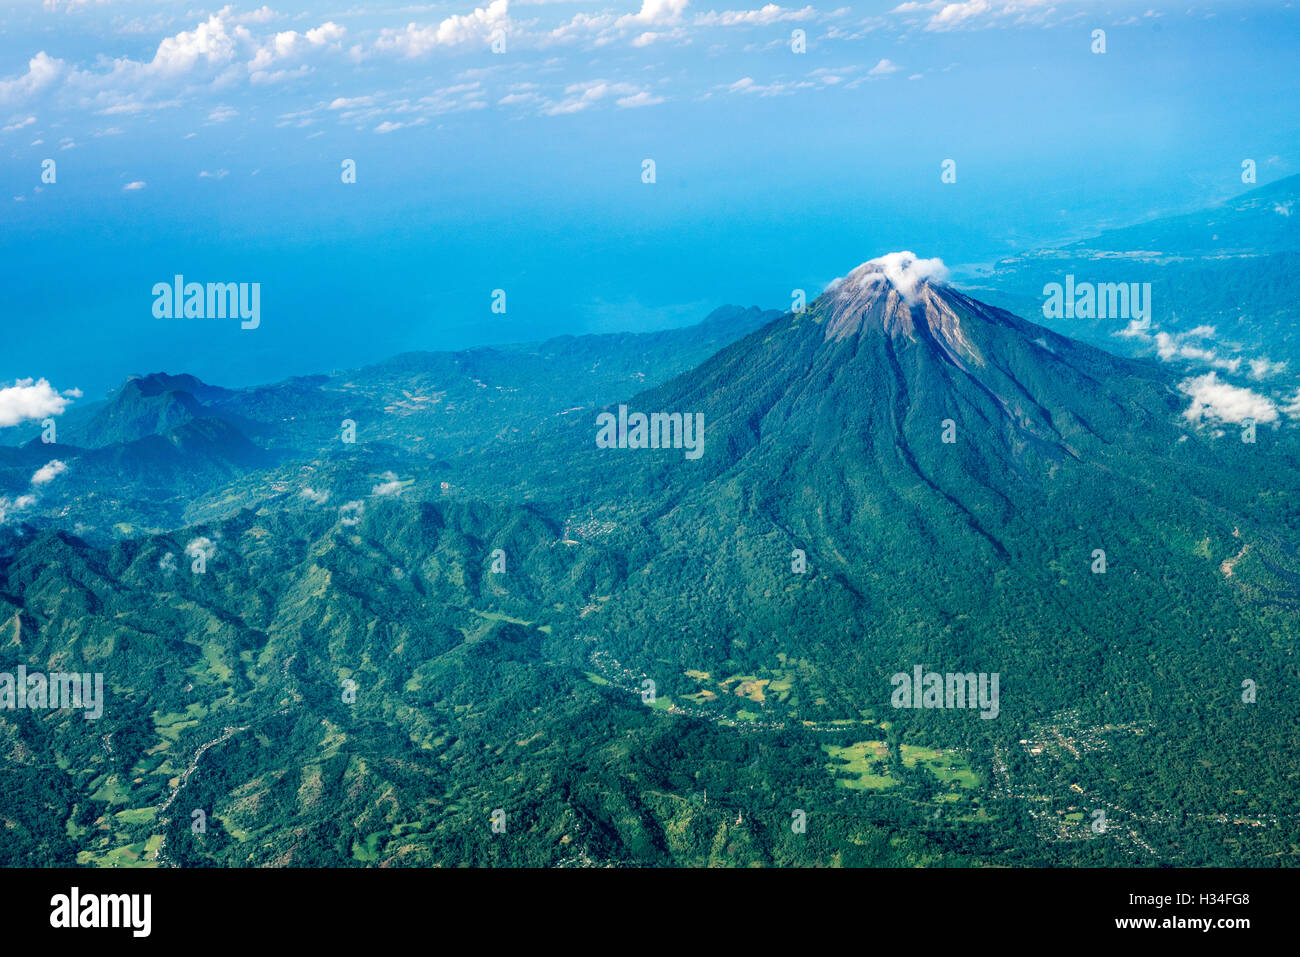 Aerial view of Mount Ebulobo volcano in Flores Island, Indonesia. - Stock Image